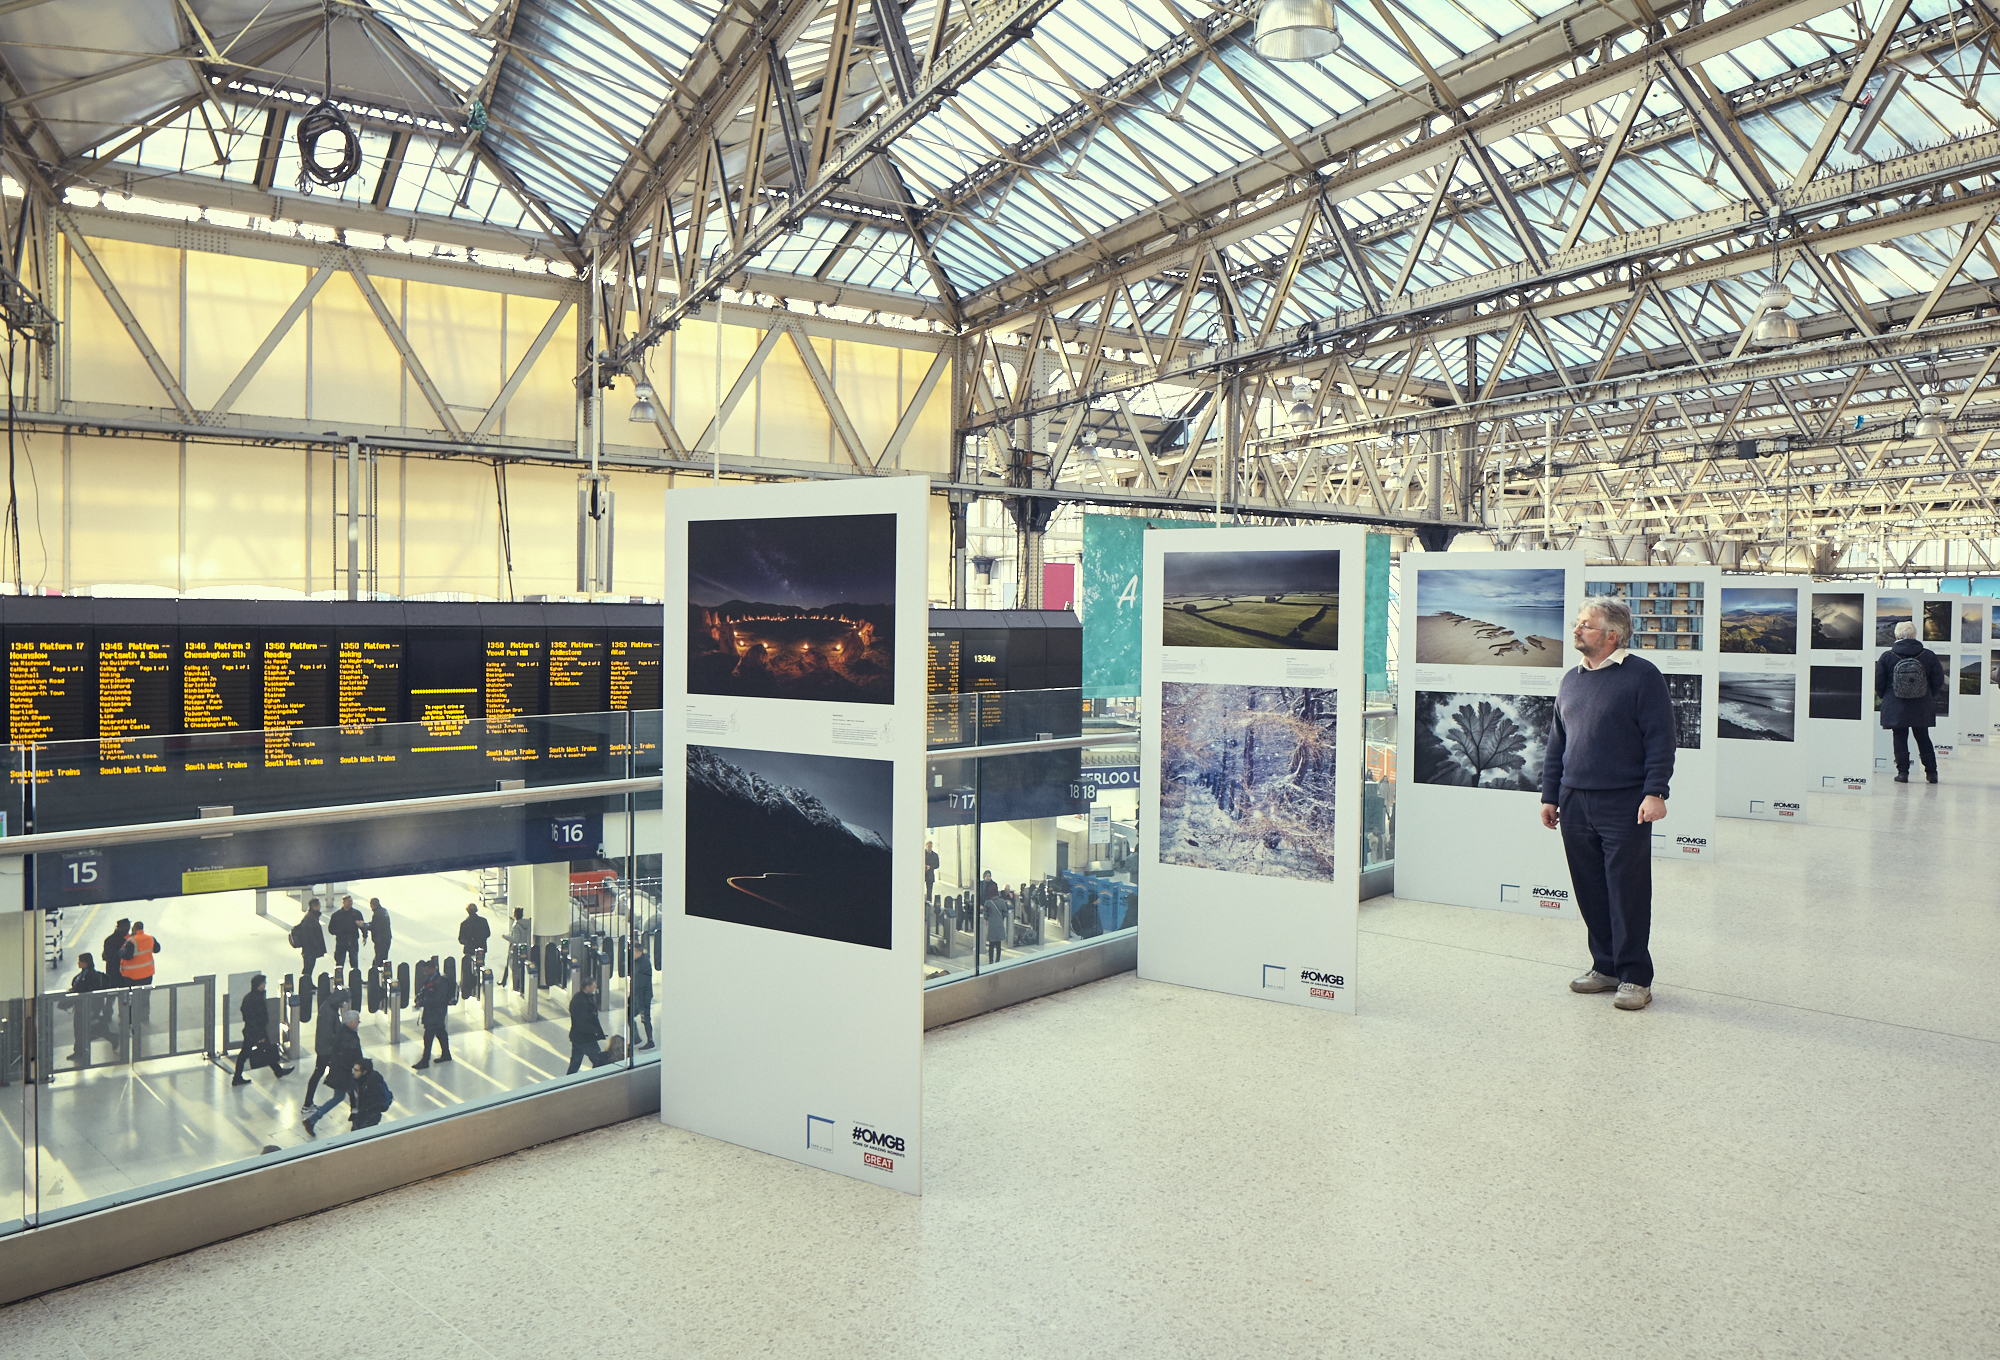 LPOTY 2016, View at the Exhibition in Waterloo station, London (January 2017)